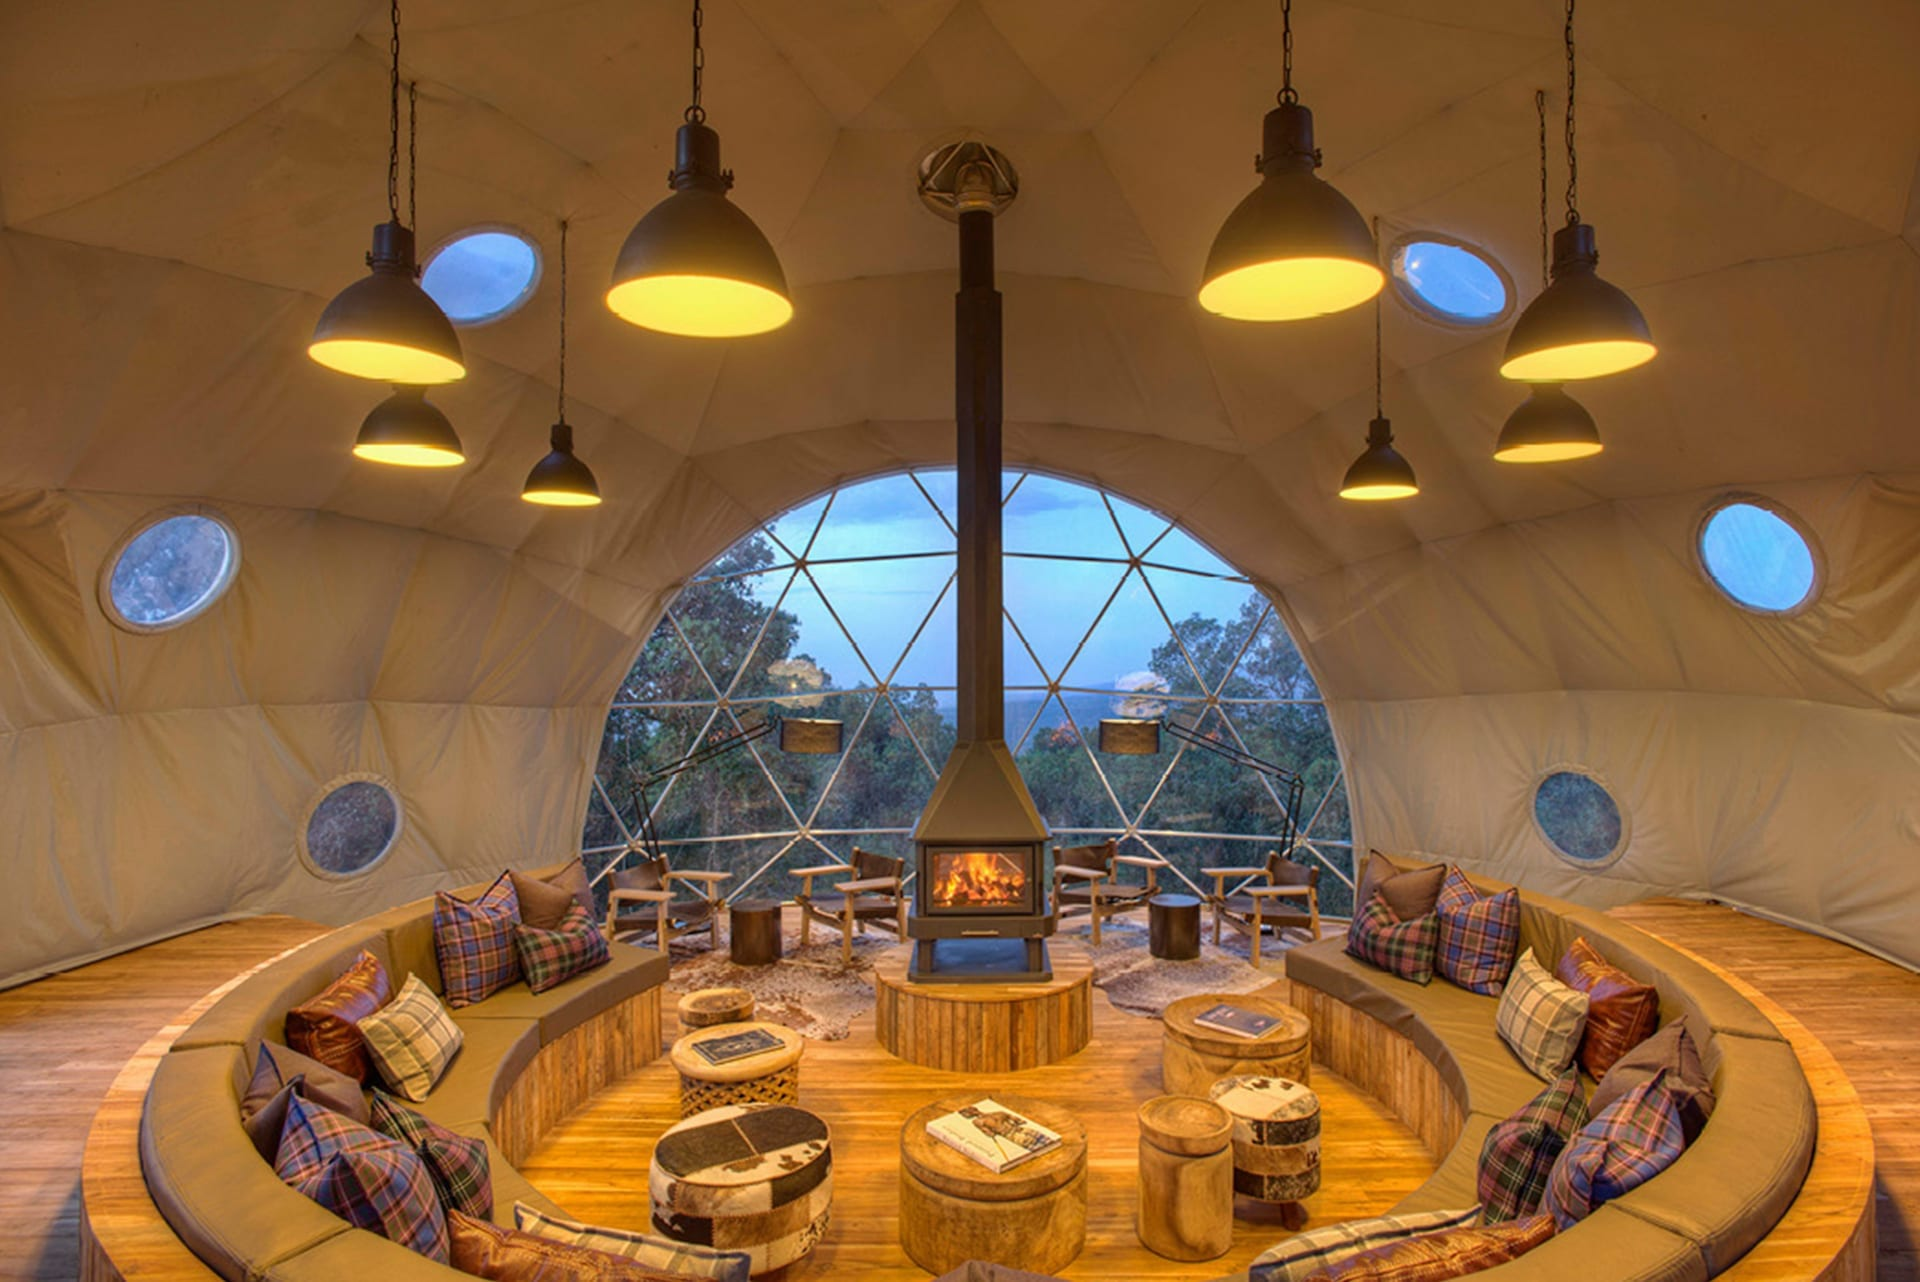 TZ 2 - the_highlands_-_lounge_dome_interior1